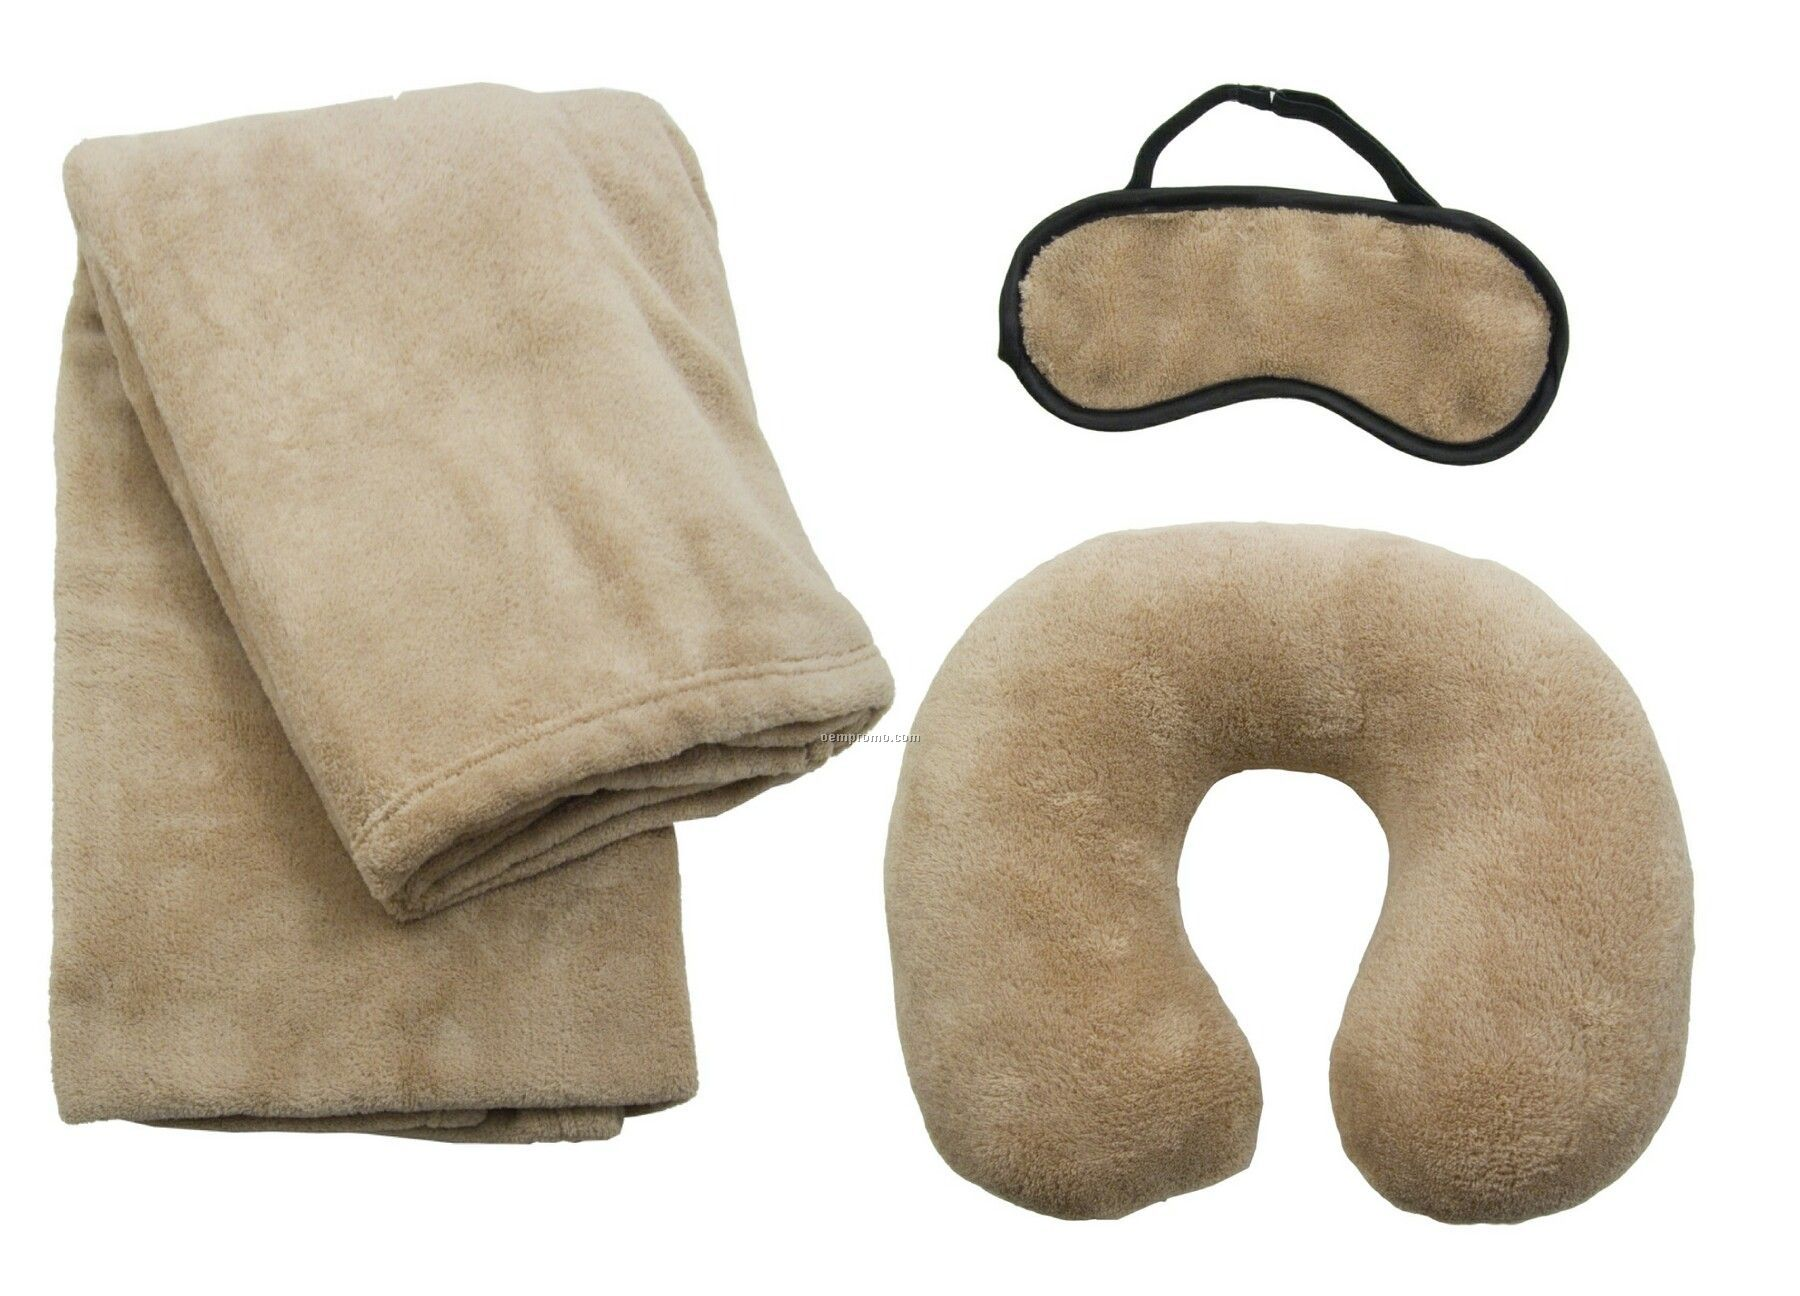 Travel Set W Blanket Pillow Mask Domestic 5 Day Delivery